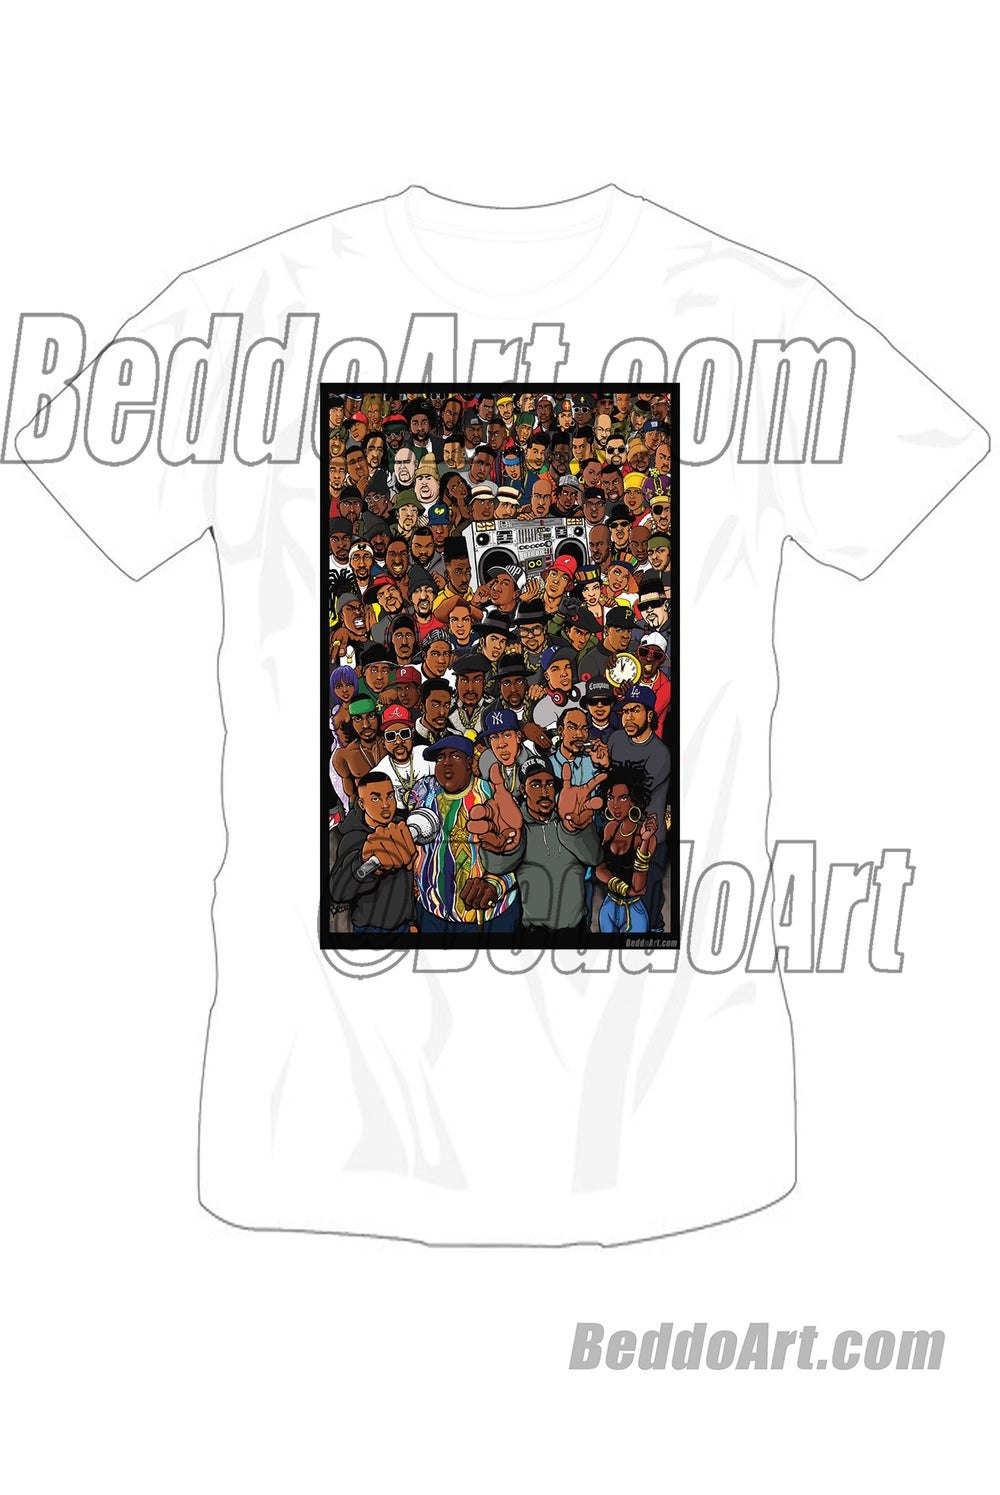 The Golden Age (color version) T-shirt by Beddo